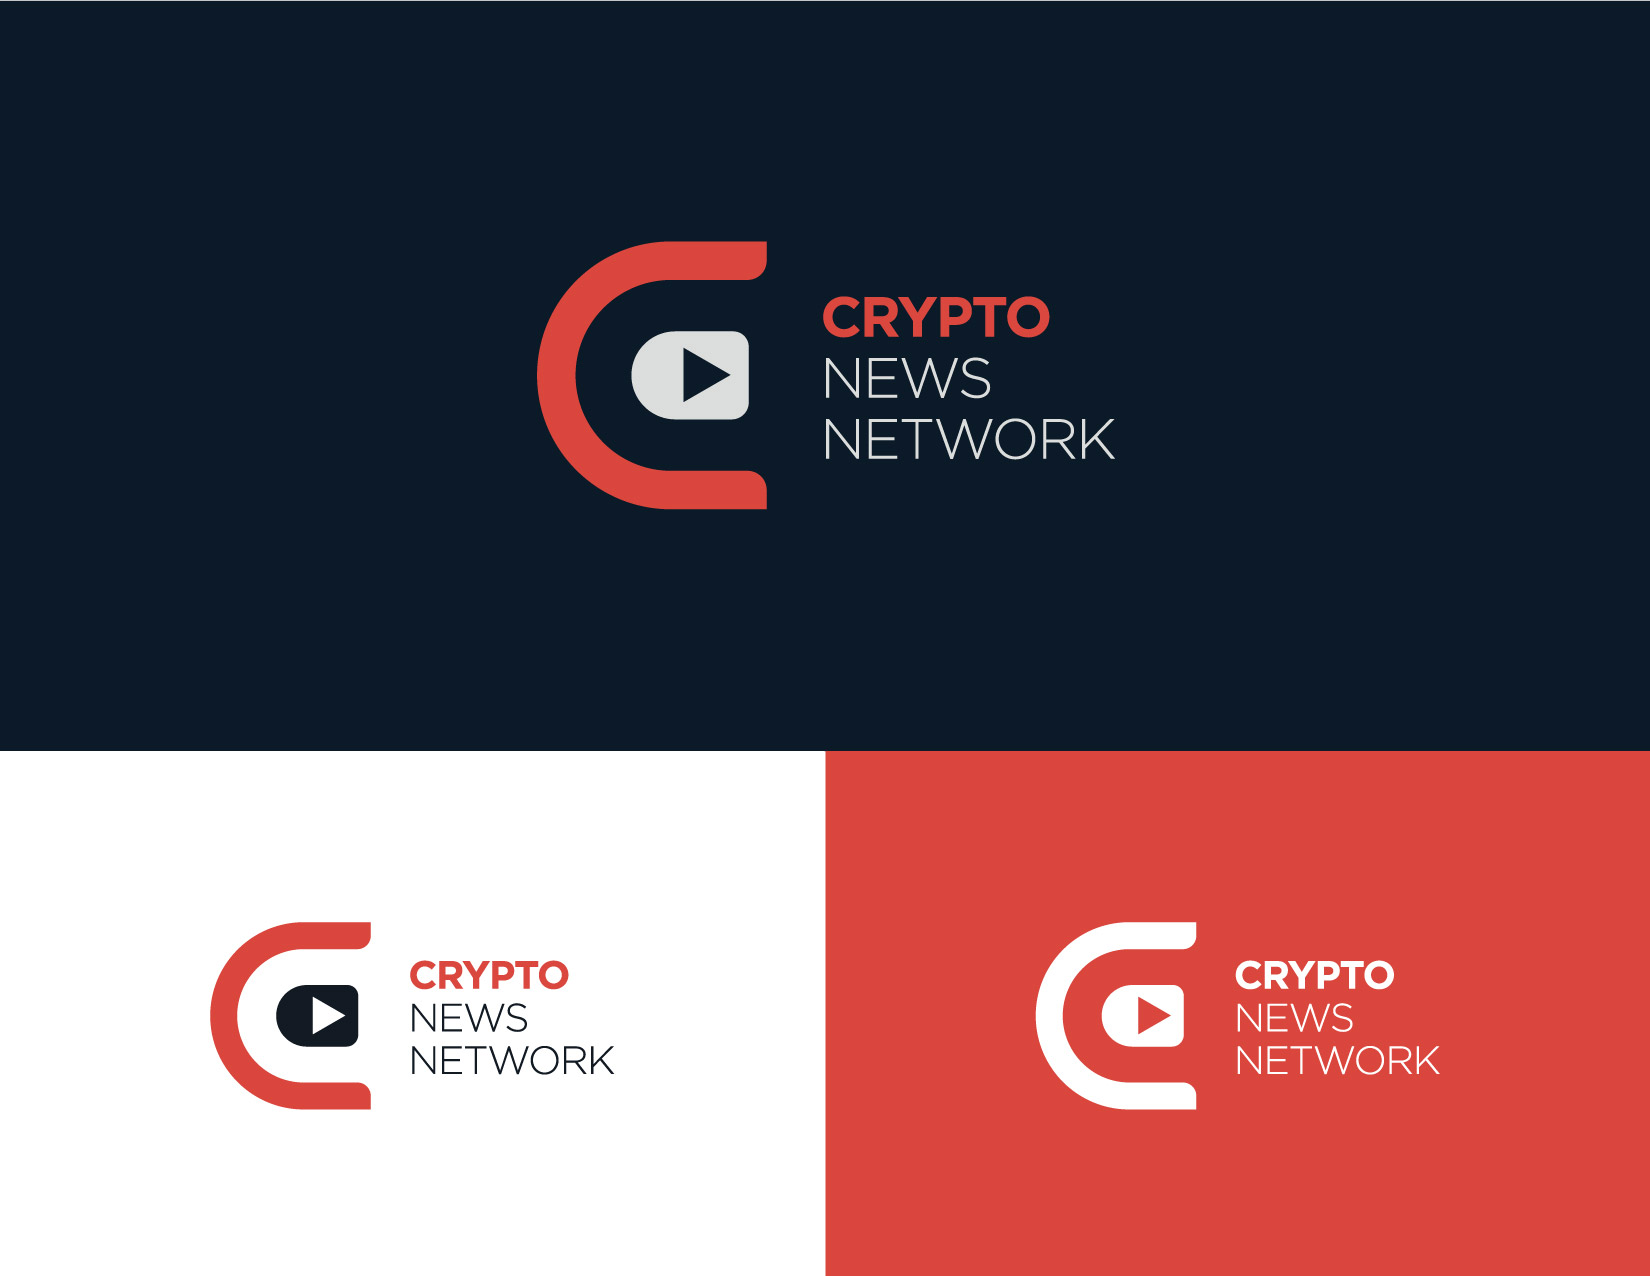 Logo design and branding for blockchain company and cryptocurrency startup. James Cannella Marketing, Design, and Artificial Intelligence Consulting Services